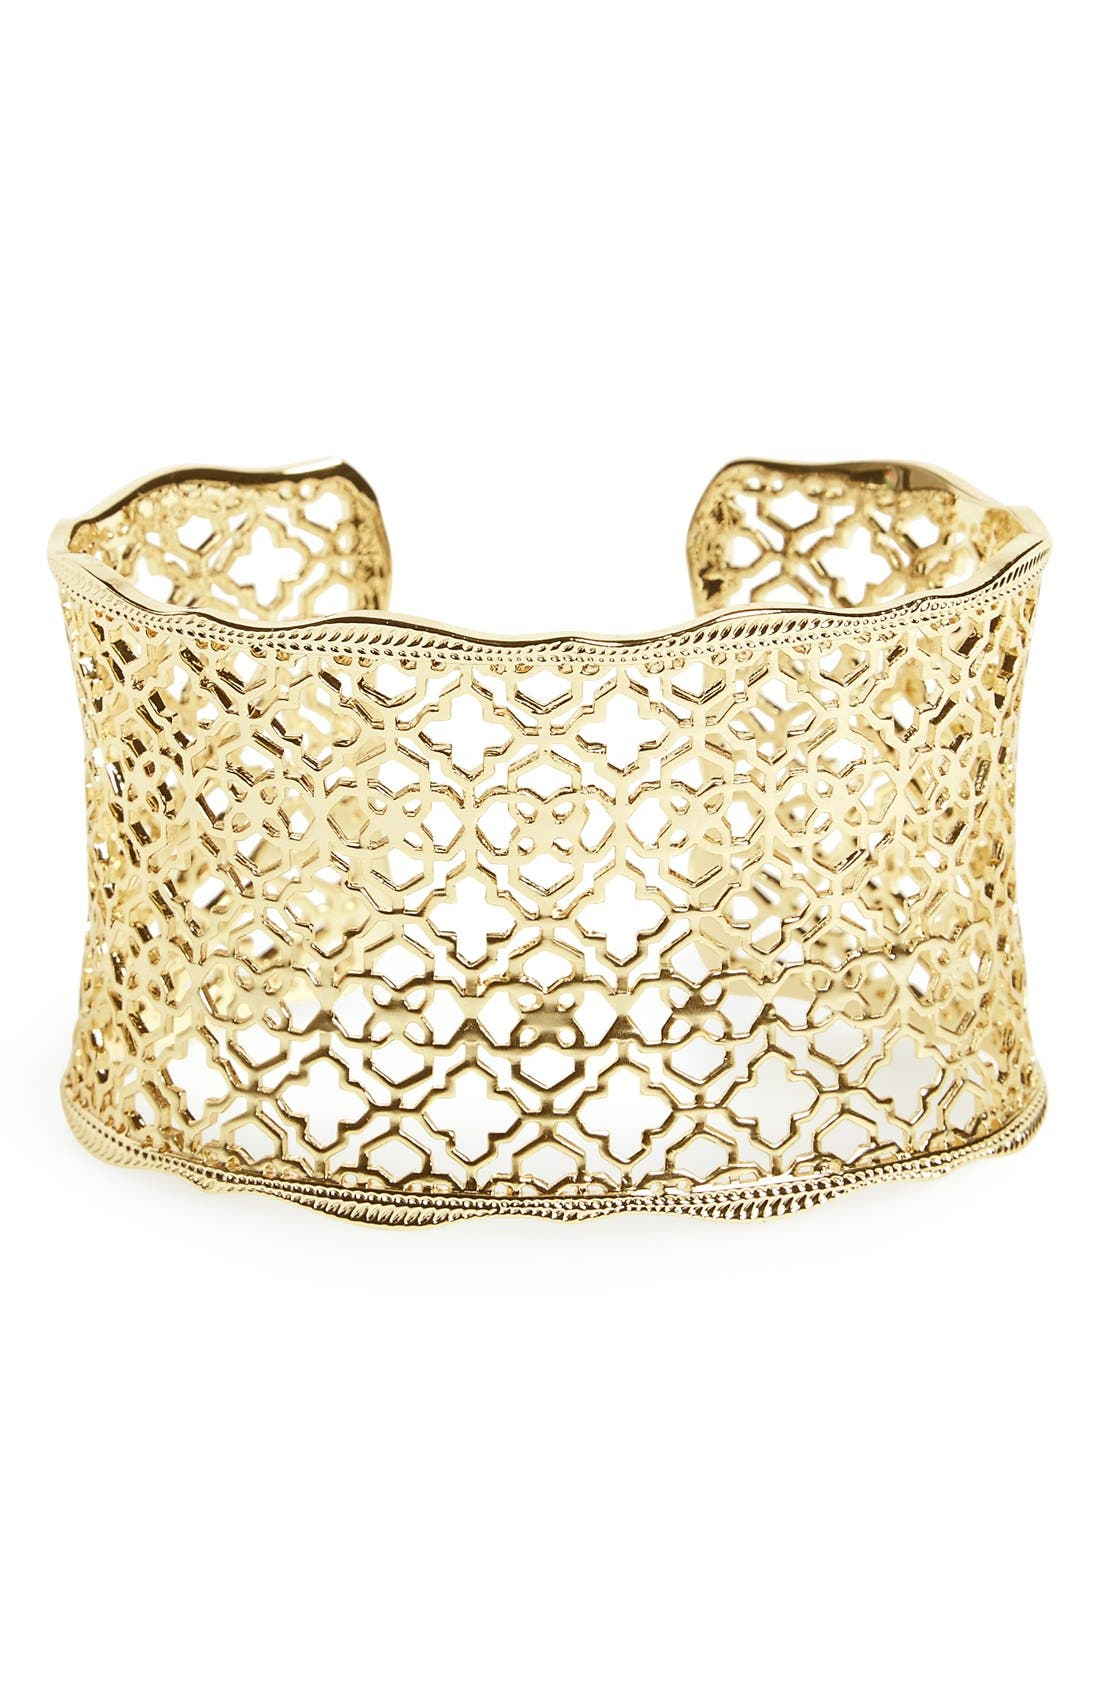 Alternate Image 1 Selected - Kendra Scott 'Mystic Bazaar - Candice' Wide Cuff